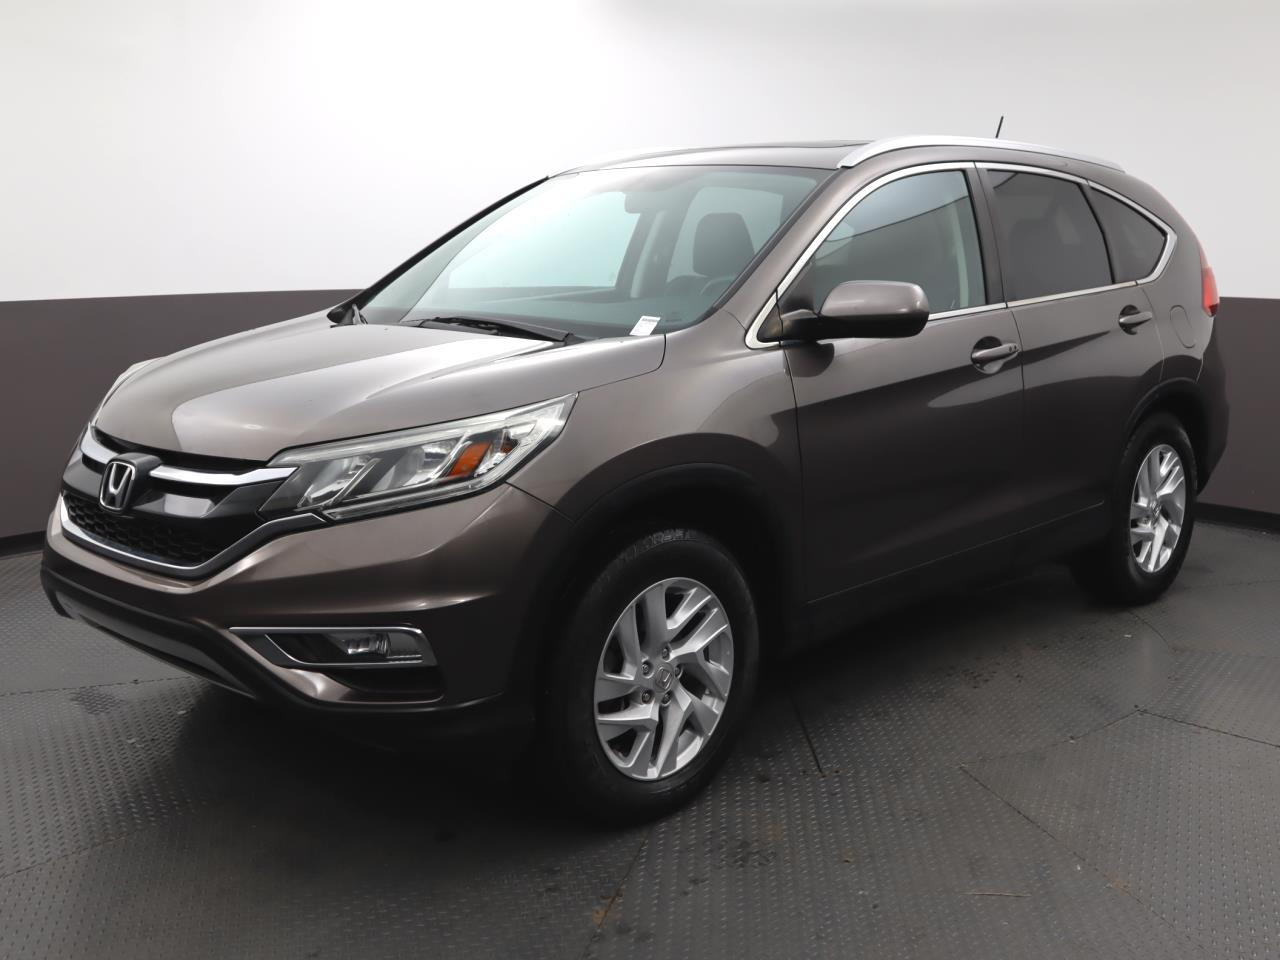 Used HONDA CR-V 2015 MIAMI EX-L